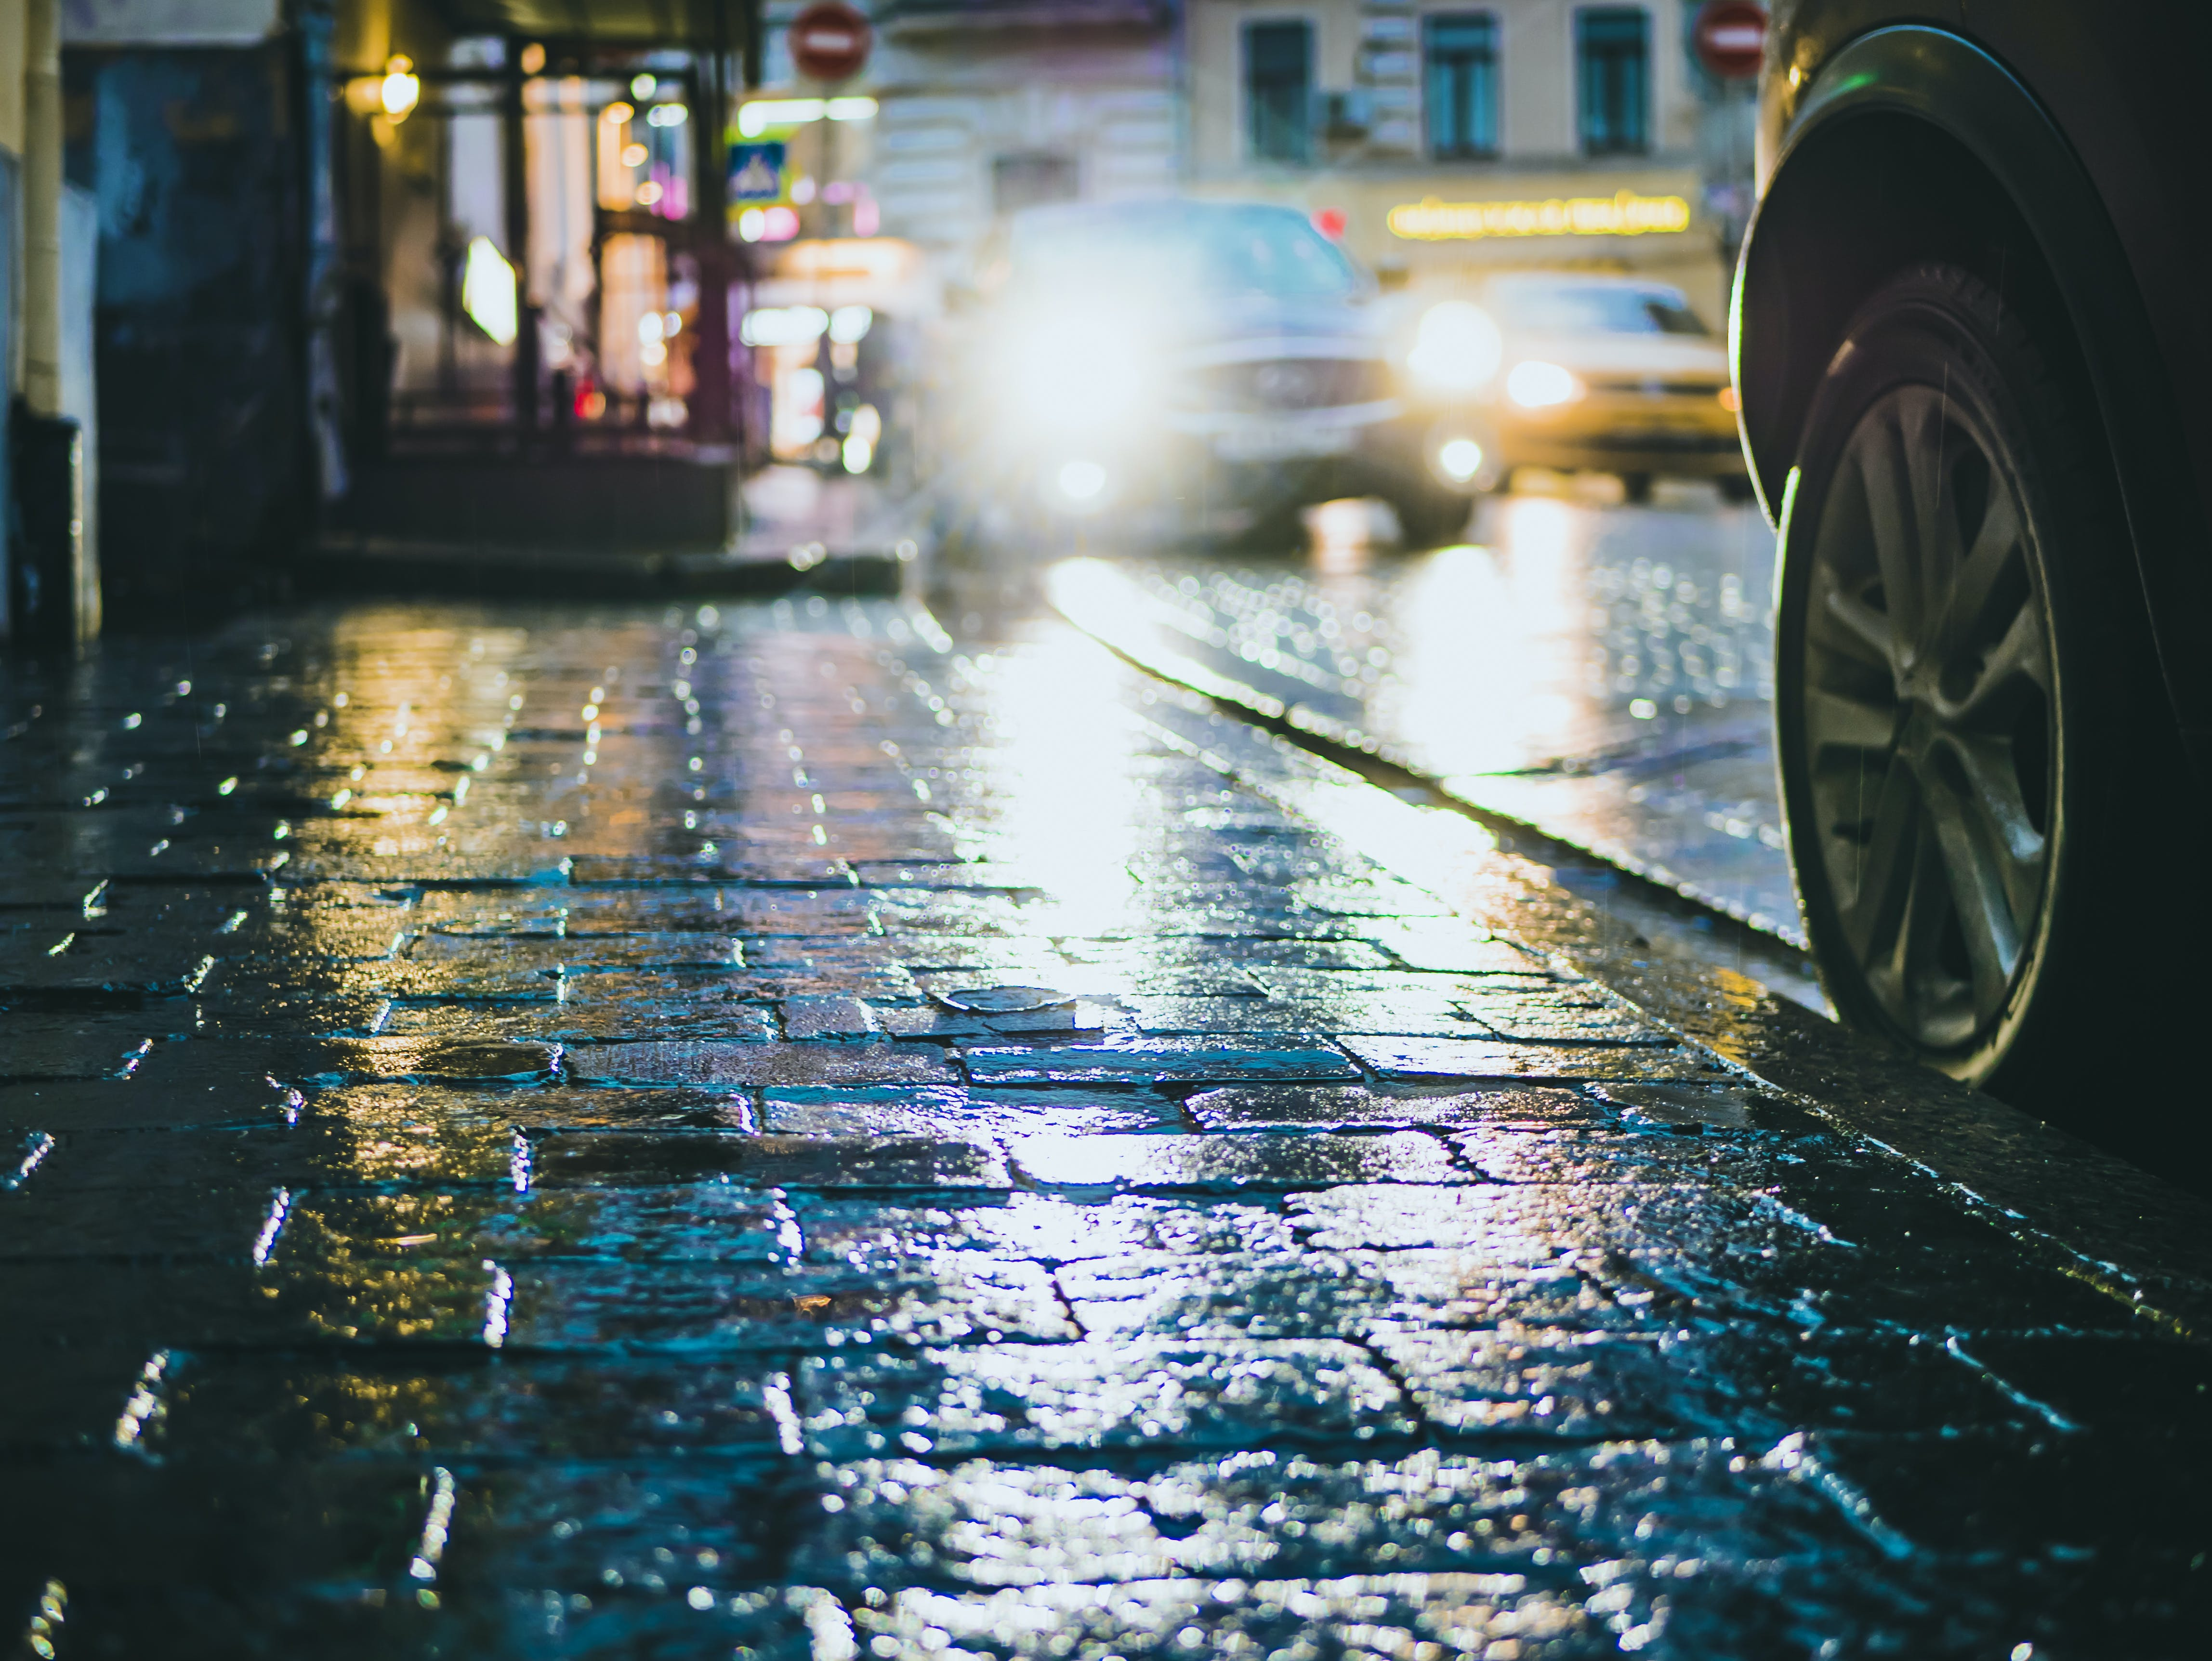 Photography of Street during Rainy Day